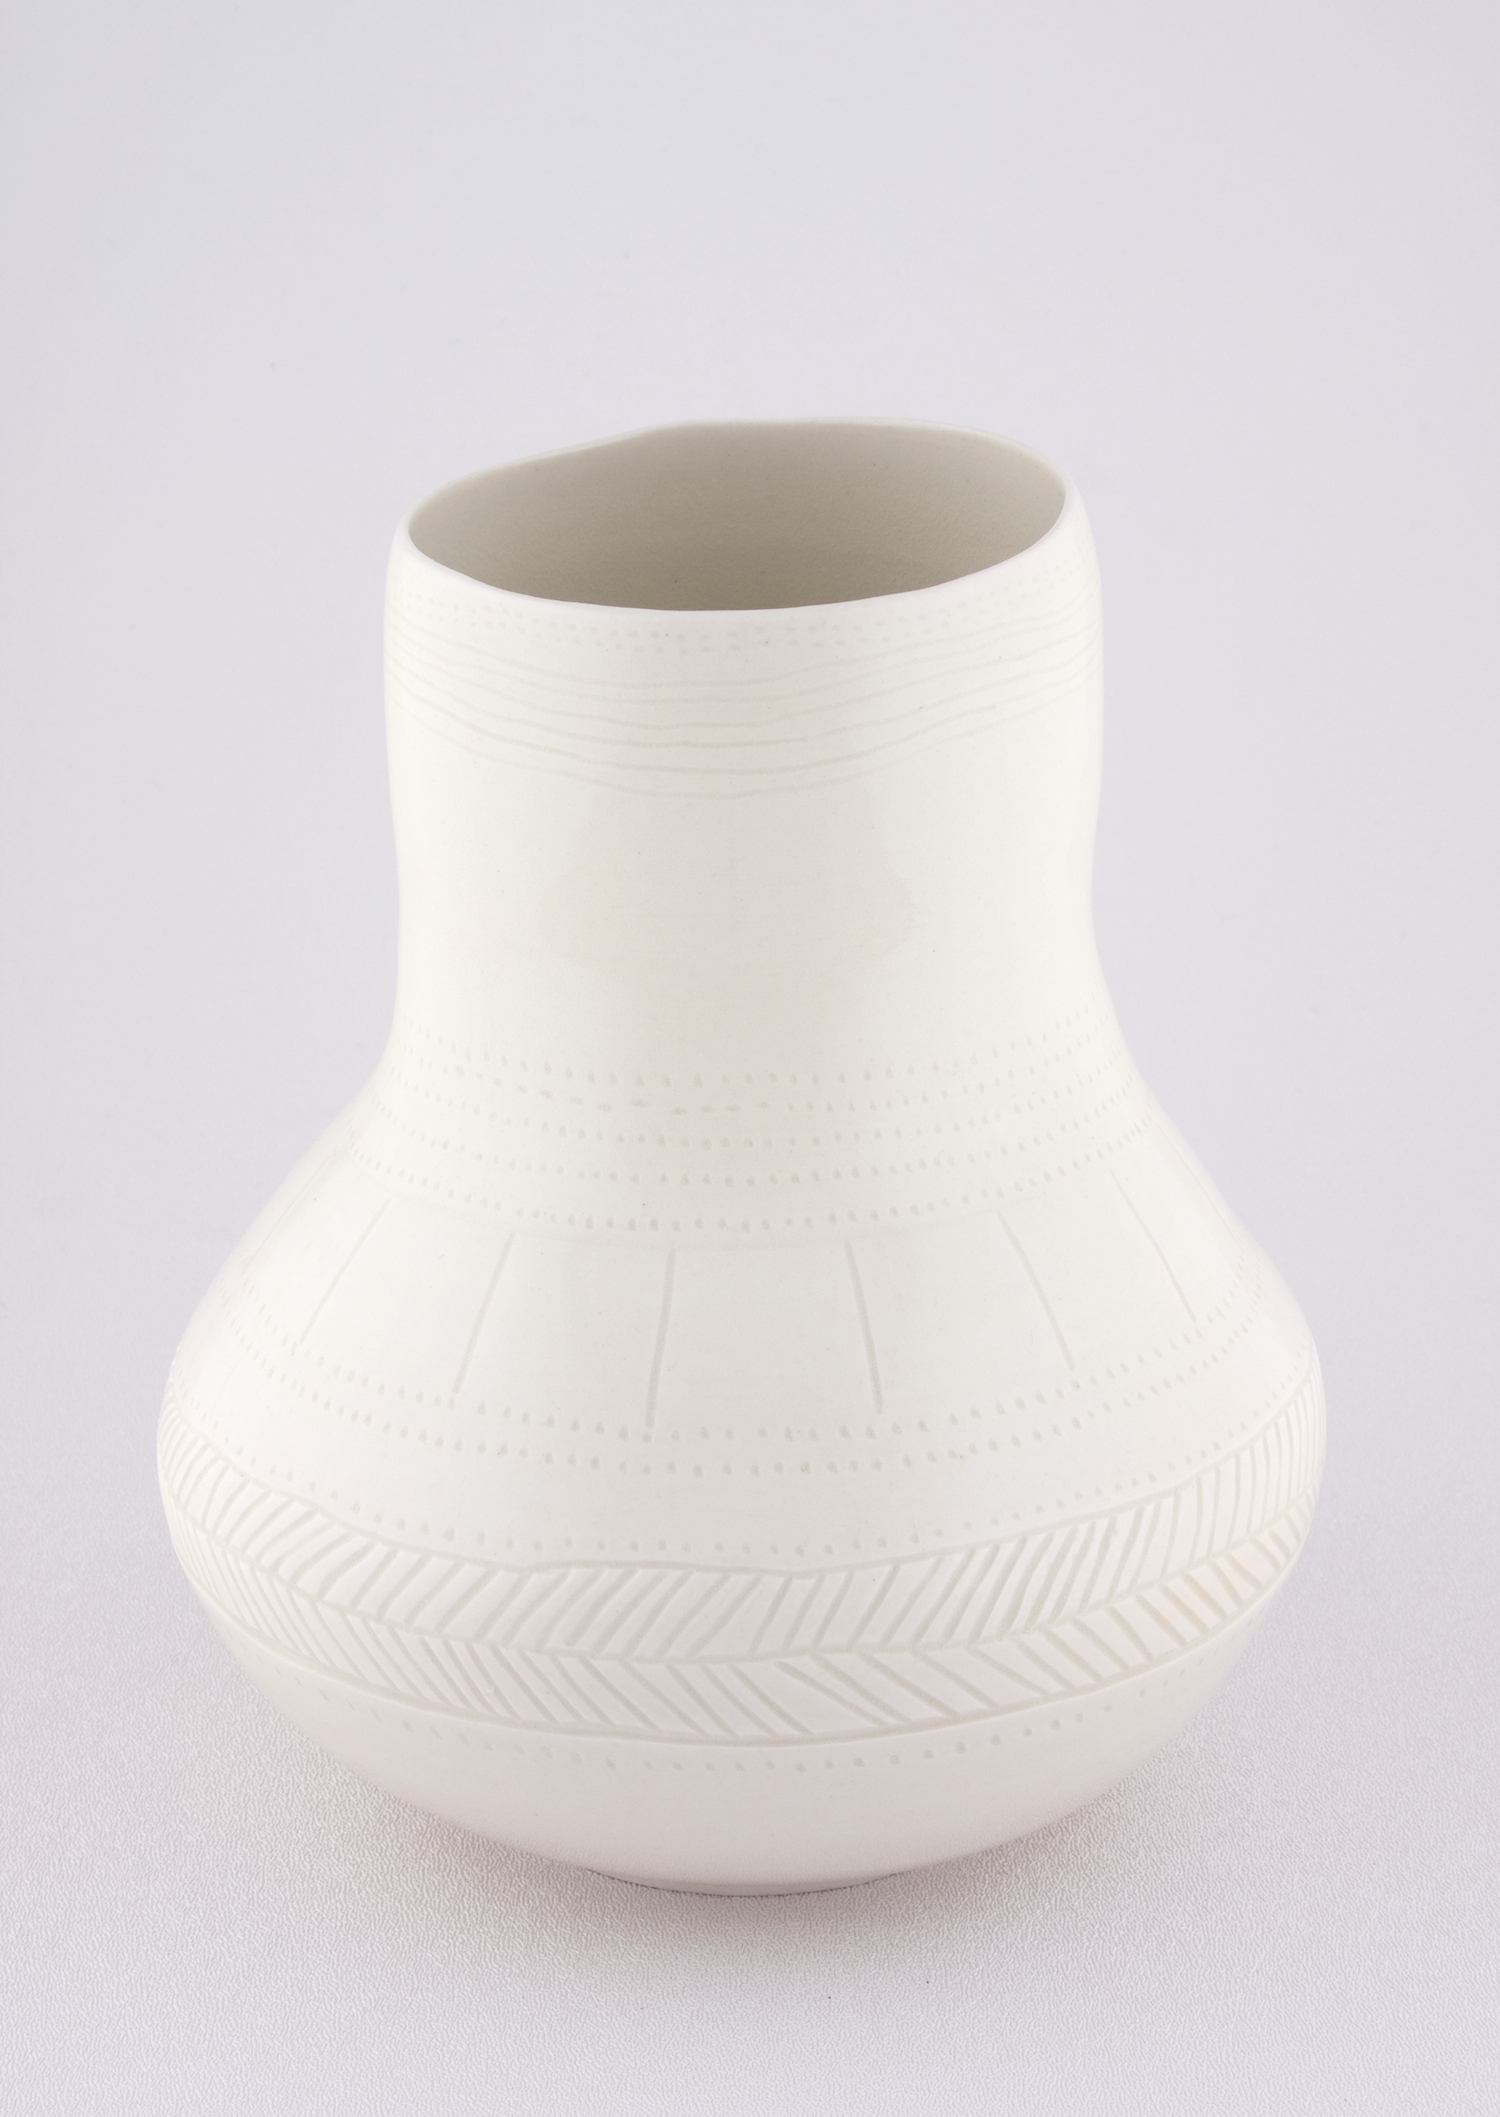 Shio Kusaka  Untitled (  yayoi   carving 2)  2009 Porcelain 8h x 6 ¾w x 6 ¾d in SK027